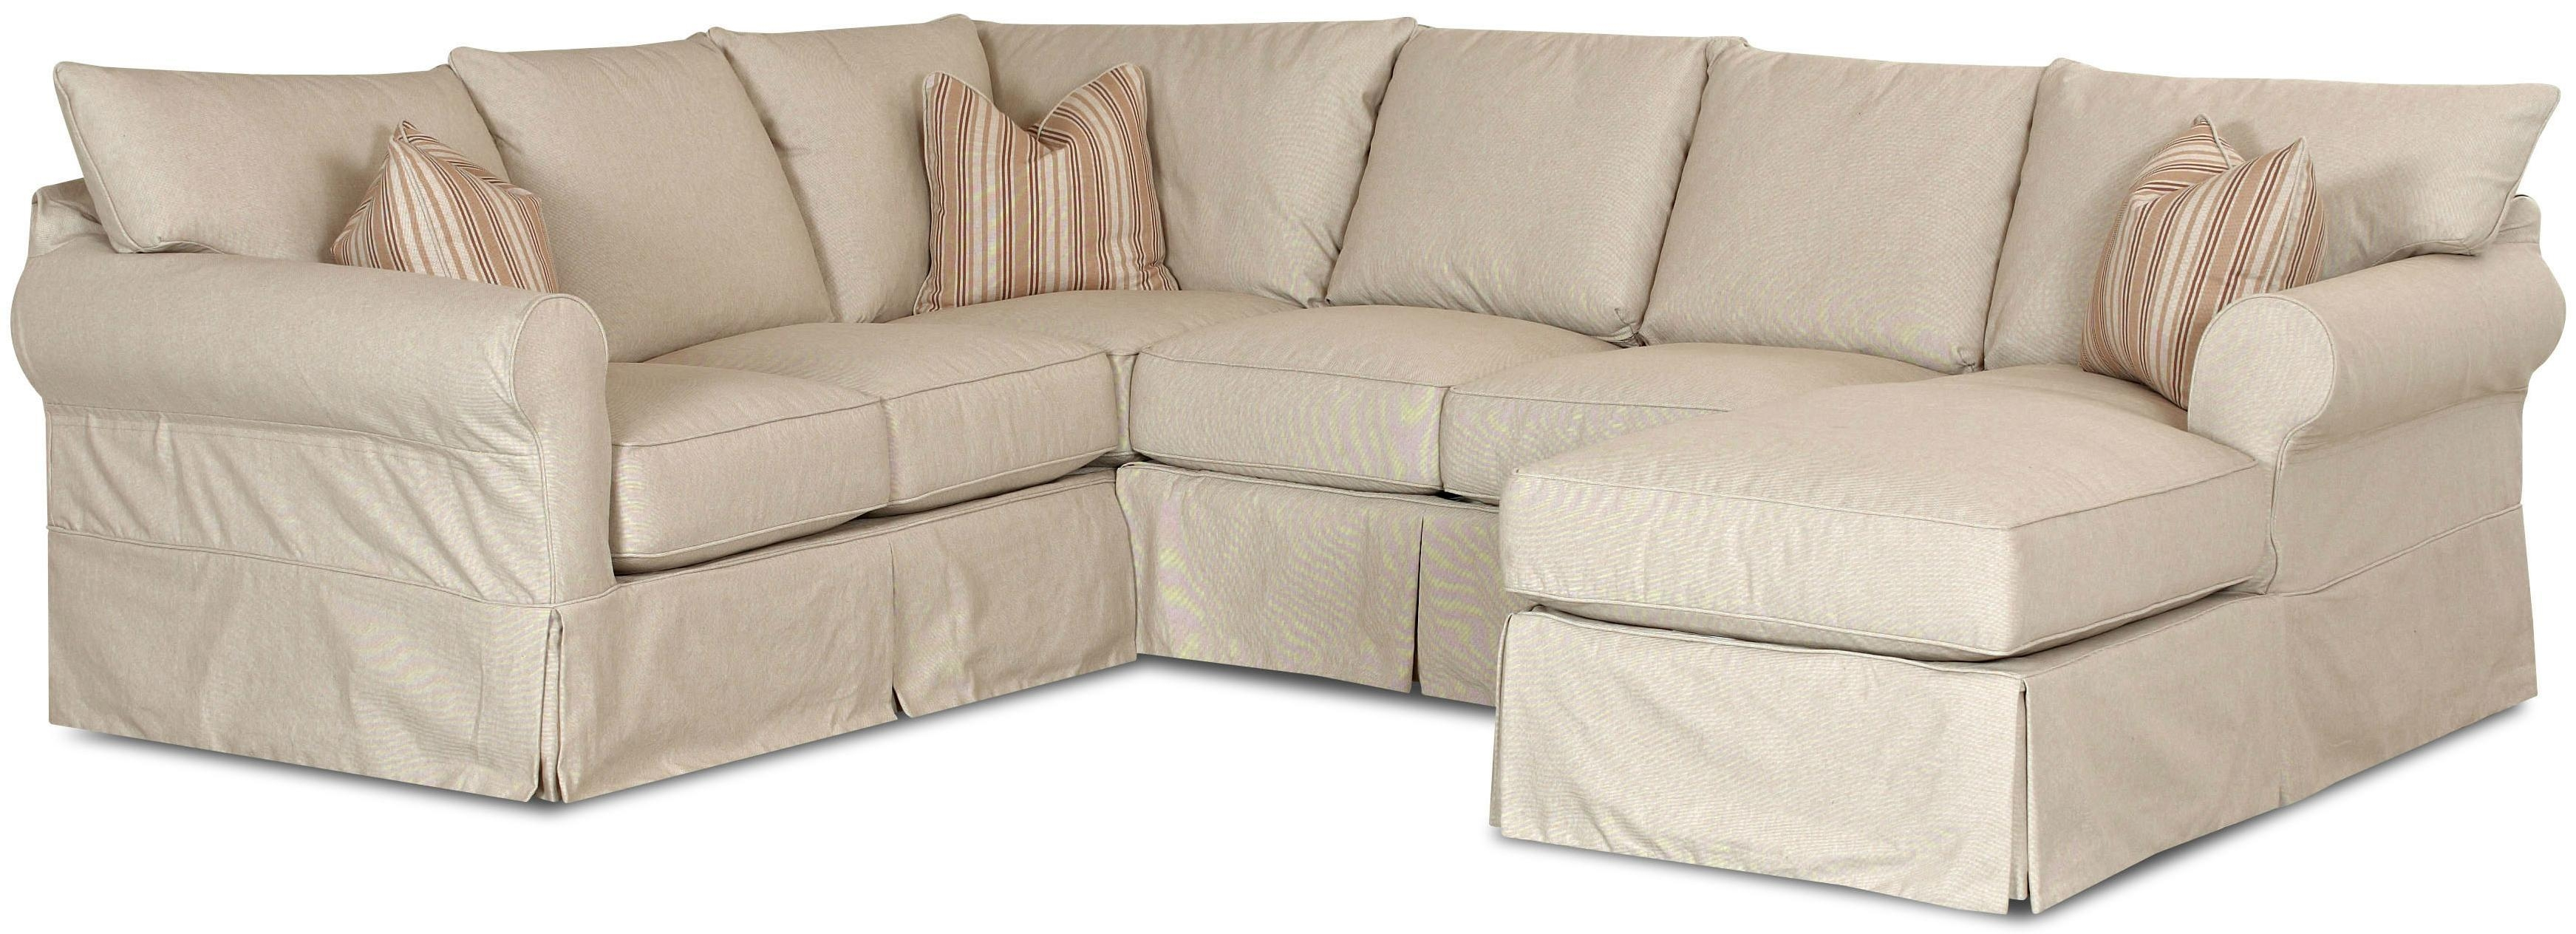 Furniture: Slip Covers For Sectional Couches | Couch Slip Covers Throughout Large Sofa Slipcovers (View 5 of 23)